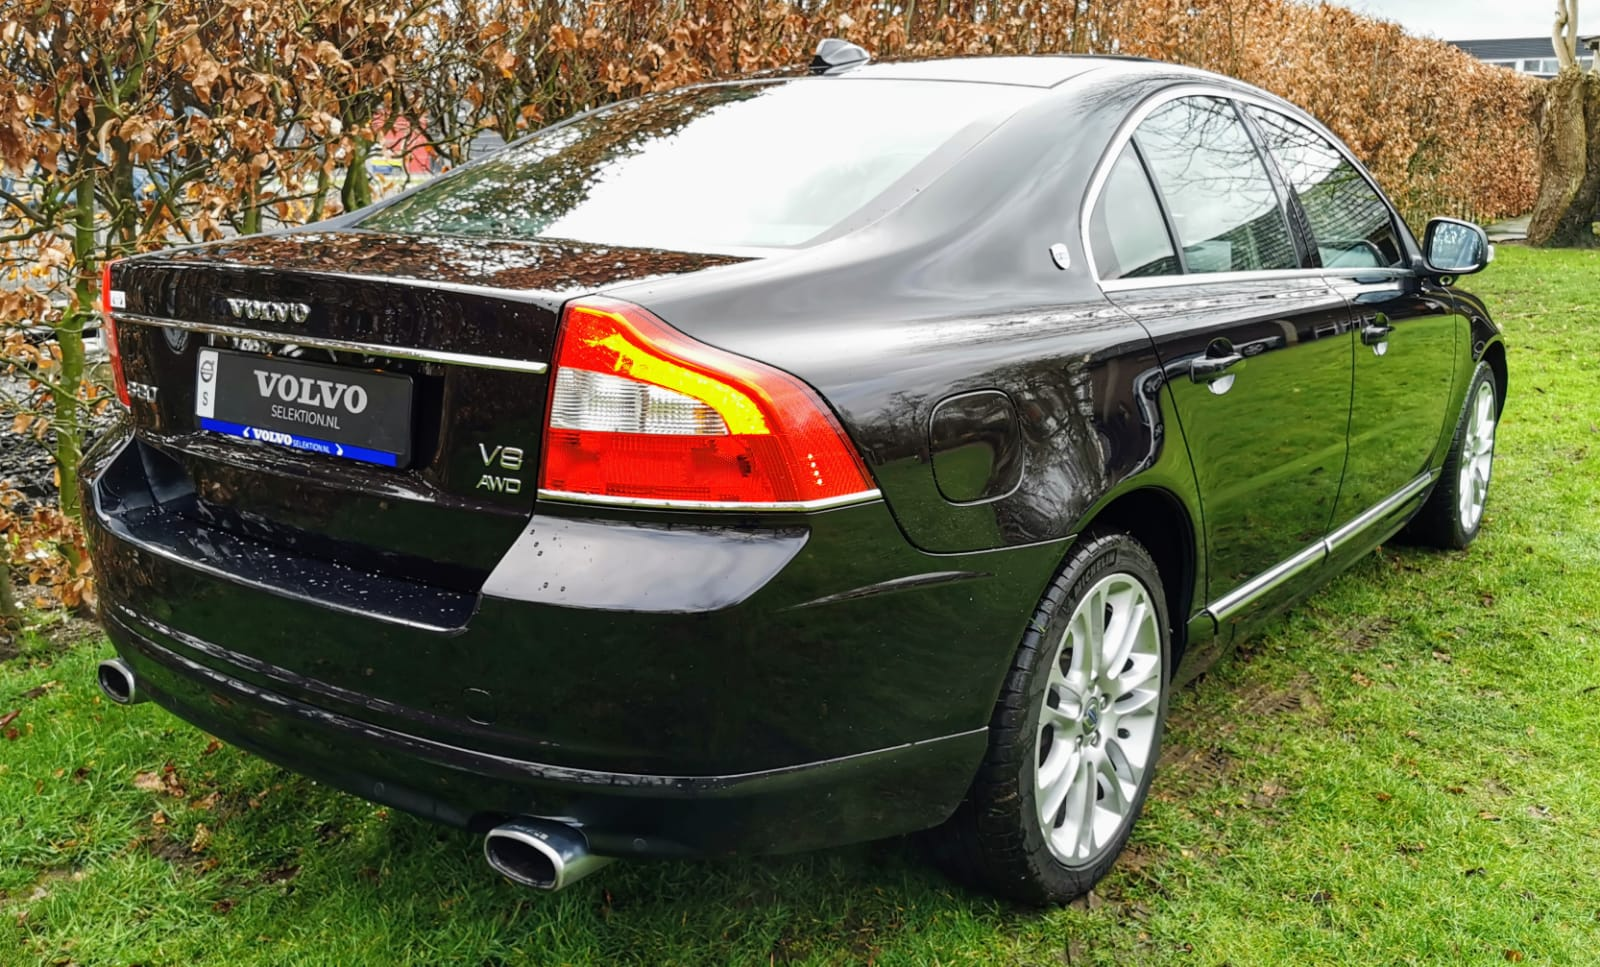 Volvo S80 4.4 V8 AWD Executive Geartronic 2008